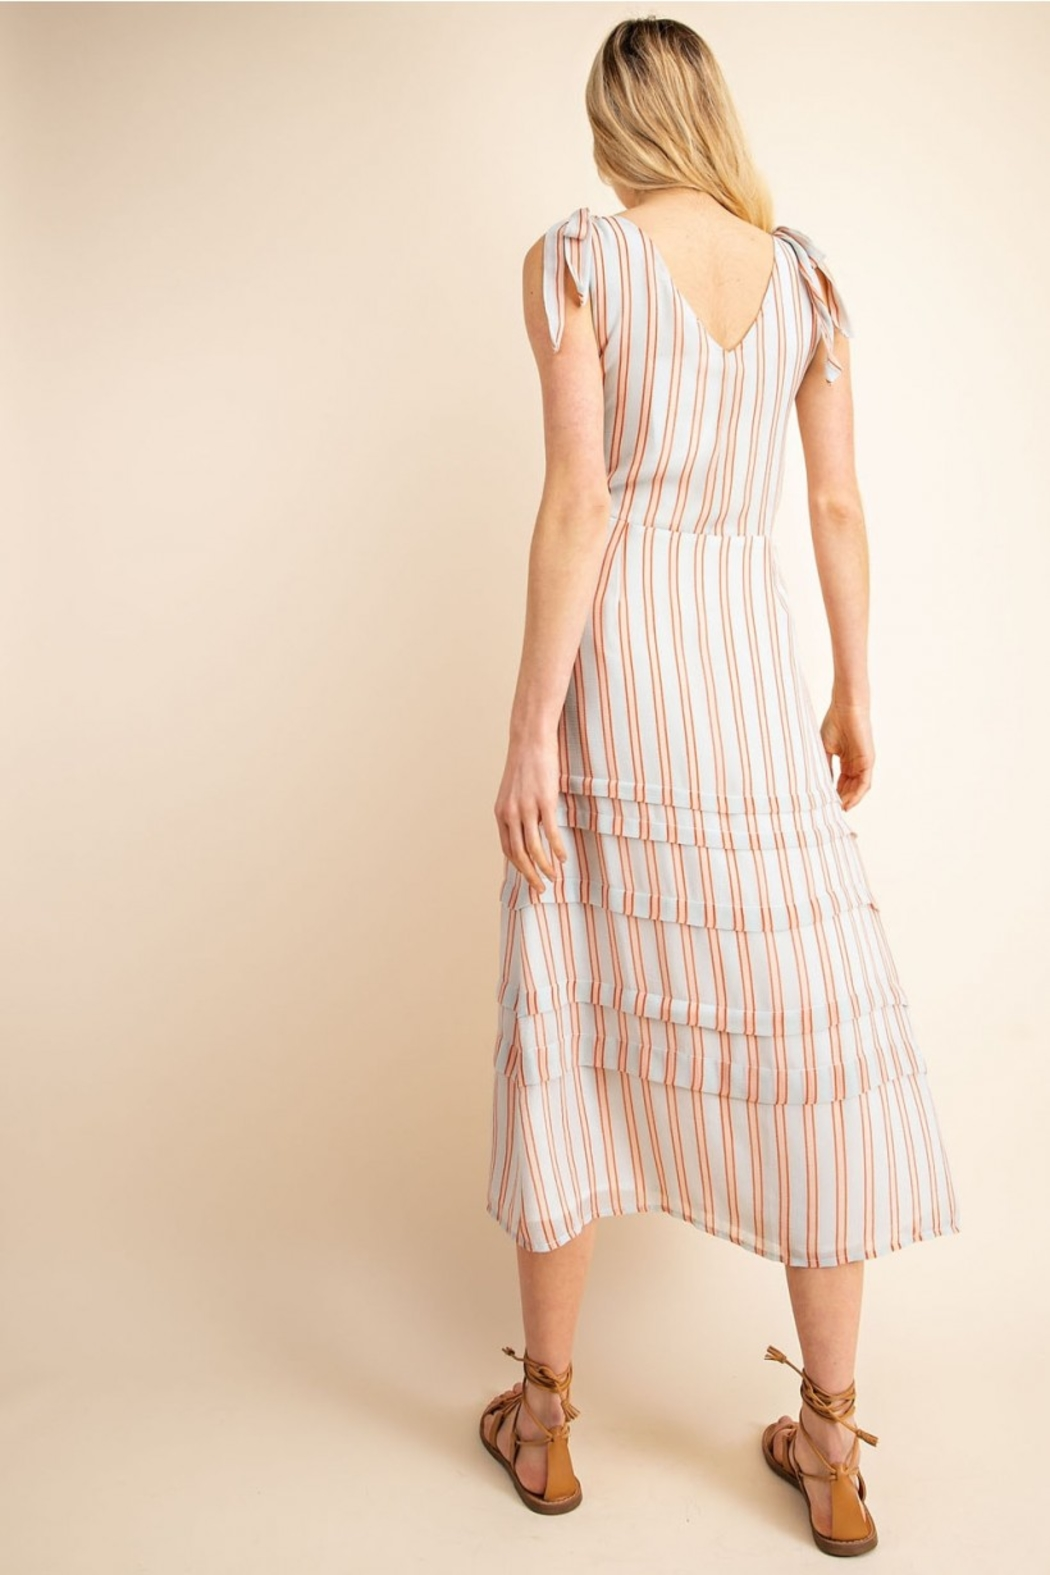 Gilli  Striped Midi Dress - Side Cropped Image